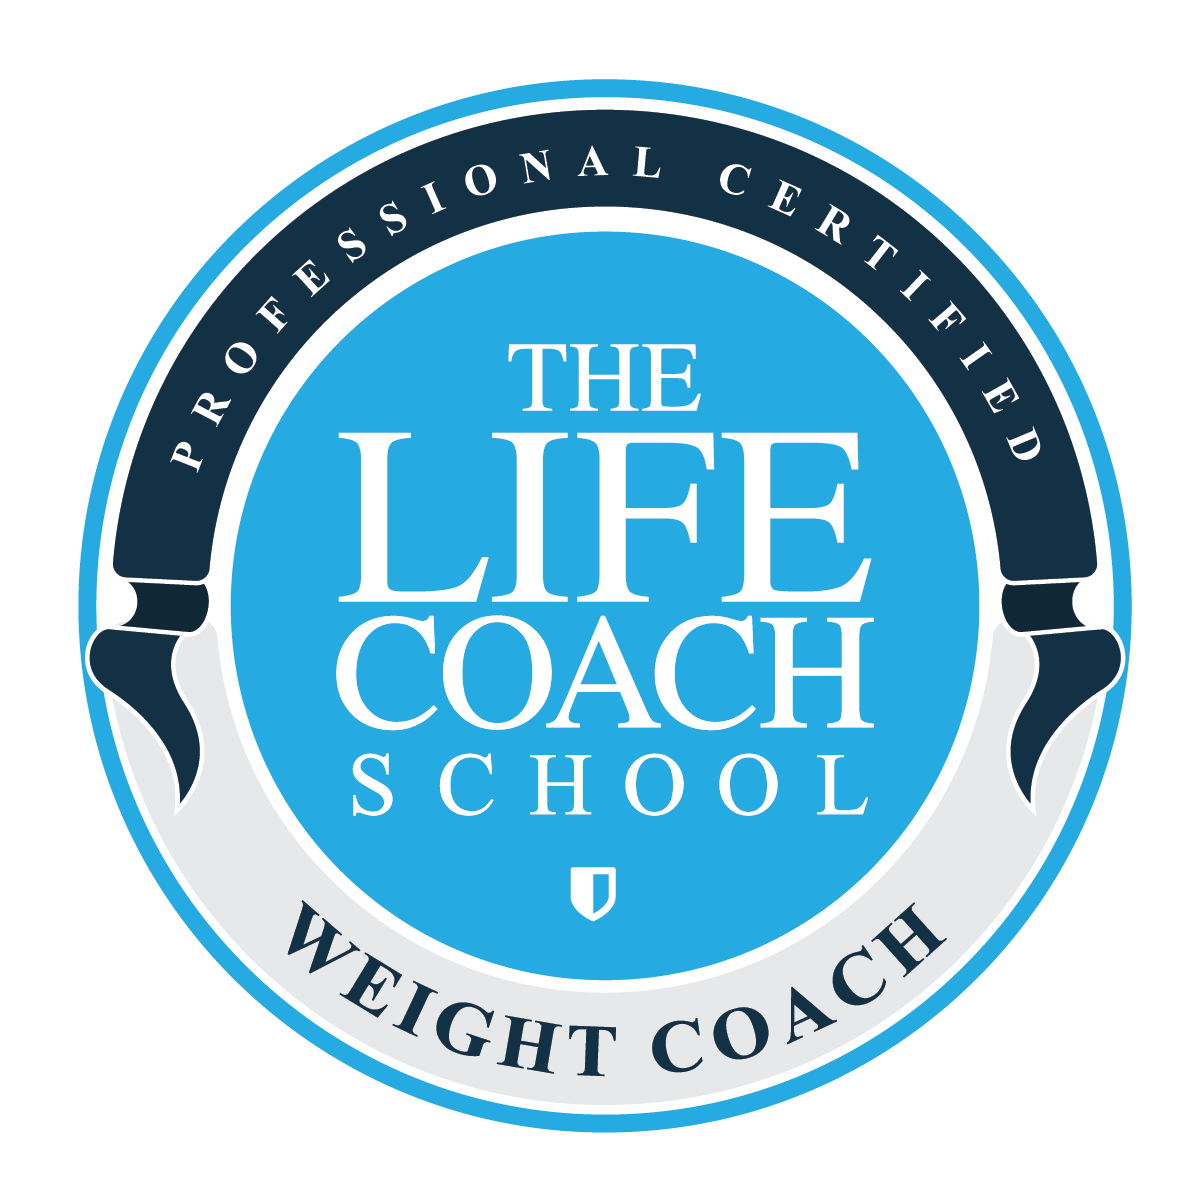 Professional Certified Weight Coach